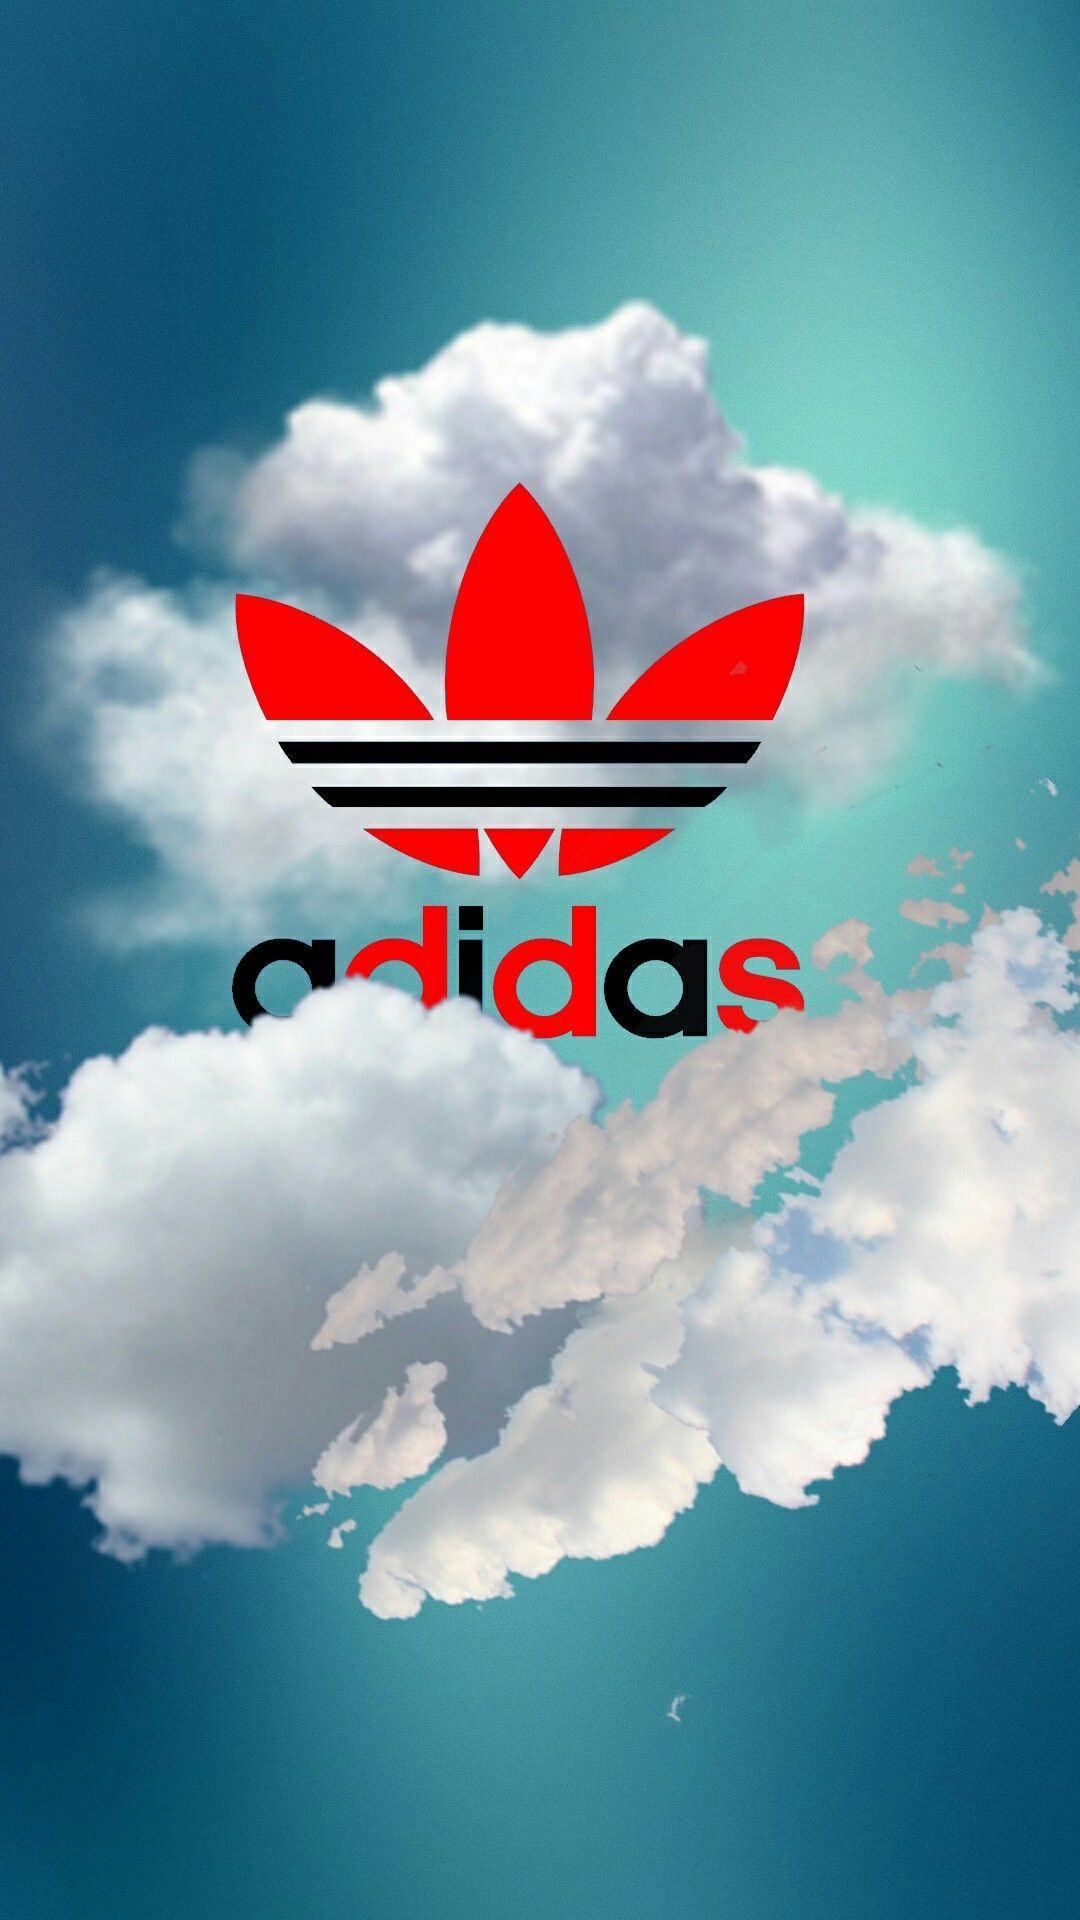 Colorful Adidas Picture Colorful Adidas Picture